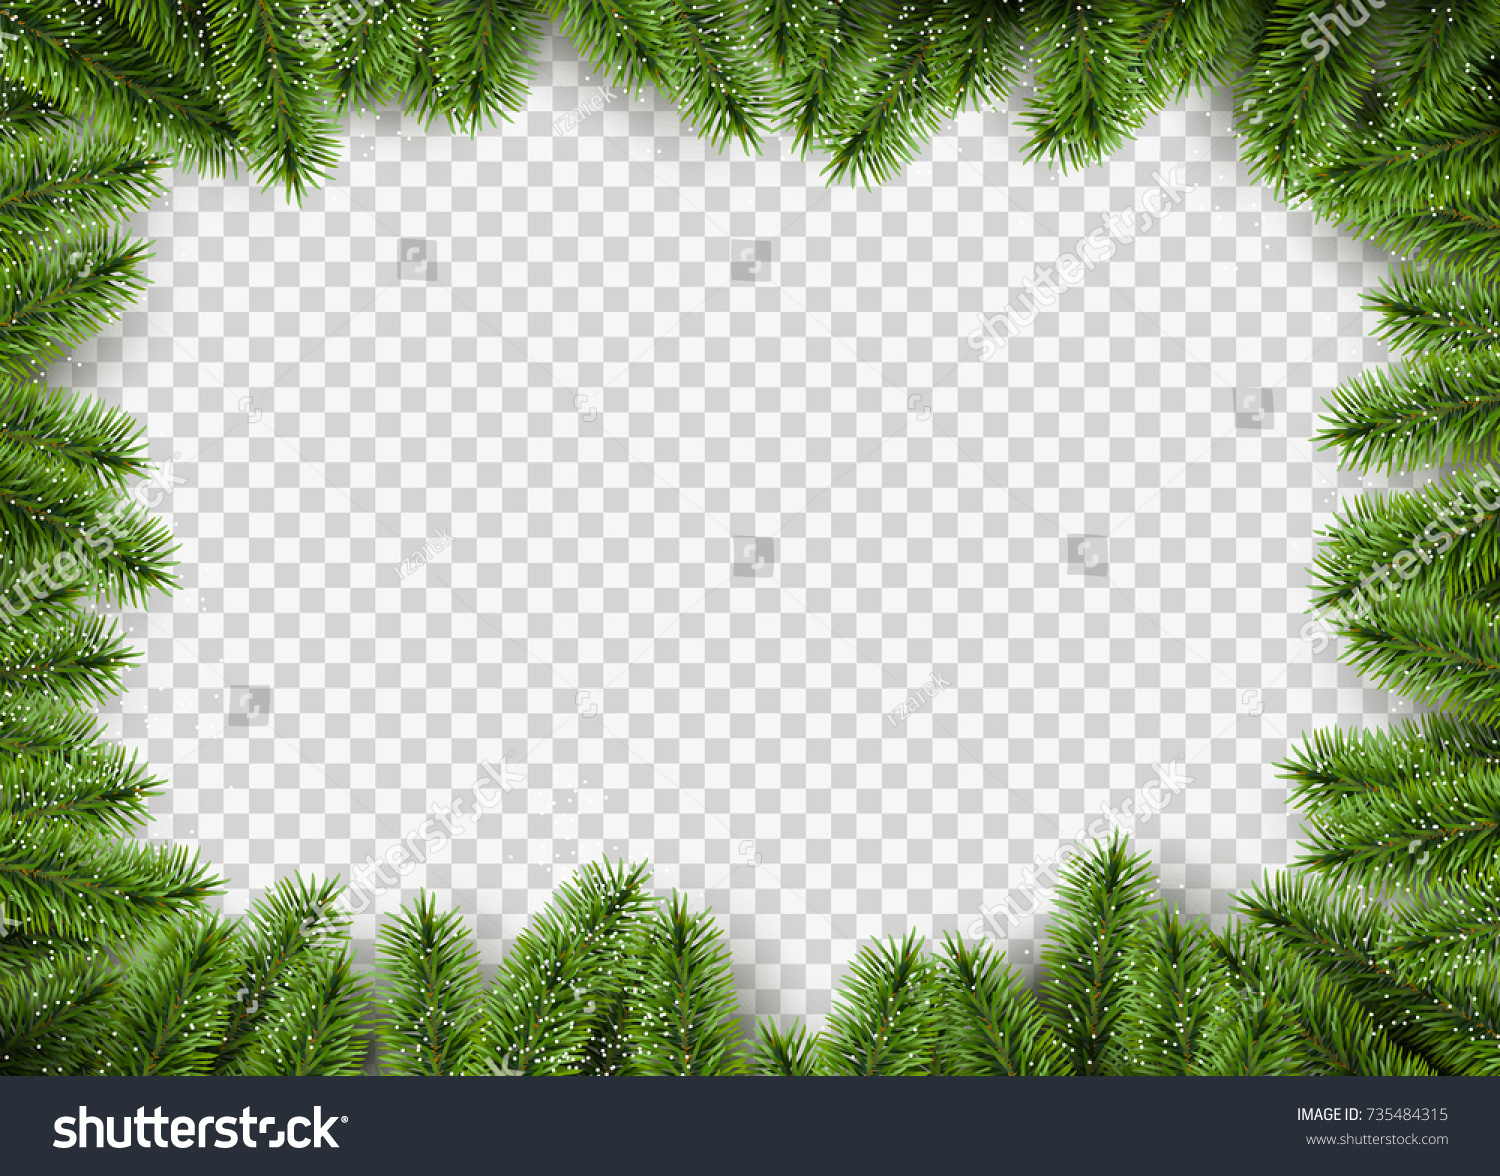 Vector Christmas Frame Pine Branches Transparent Stock ...